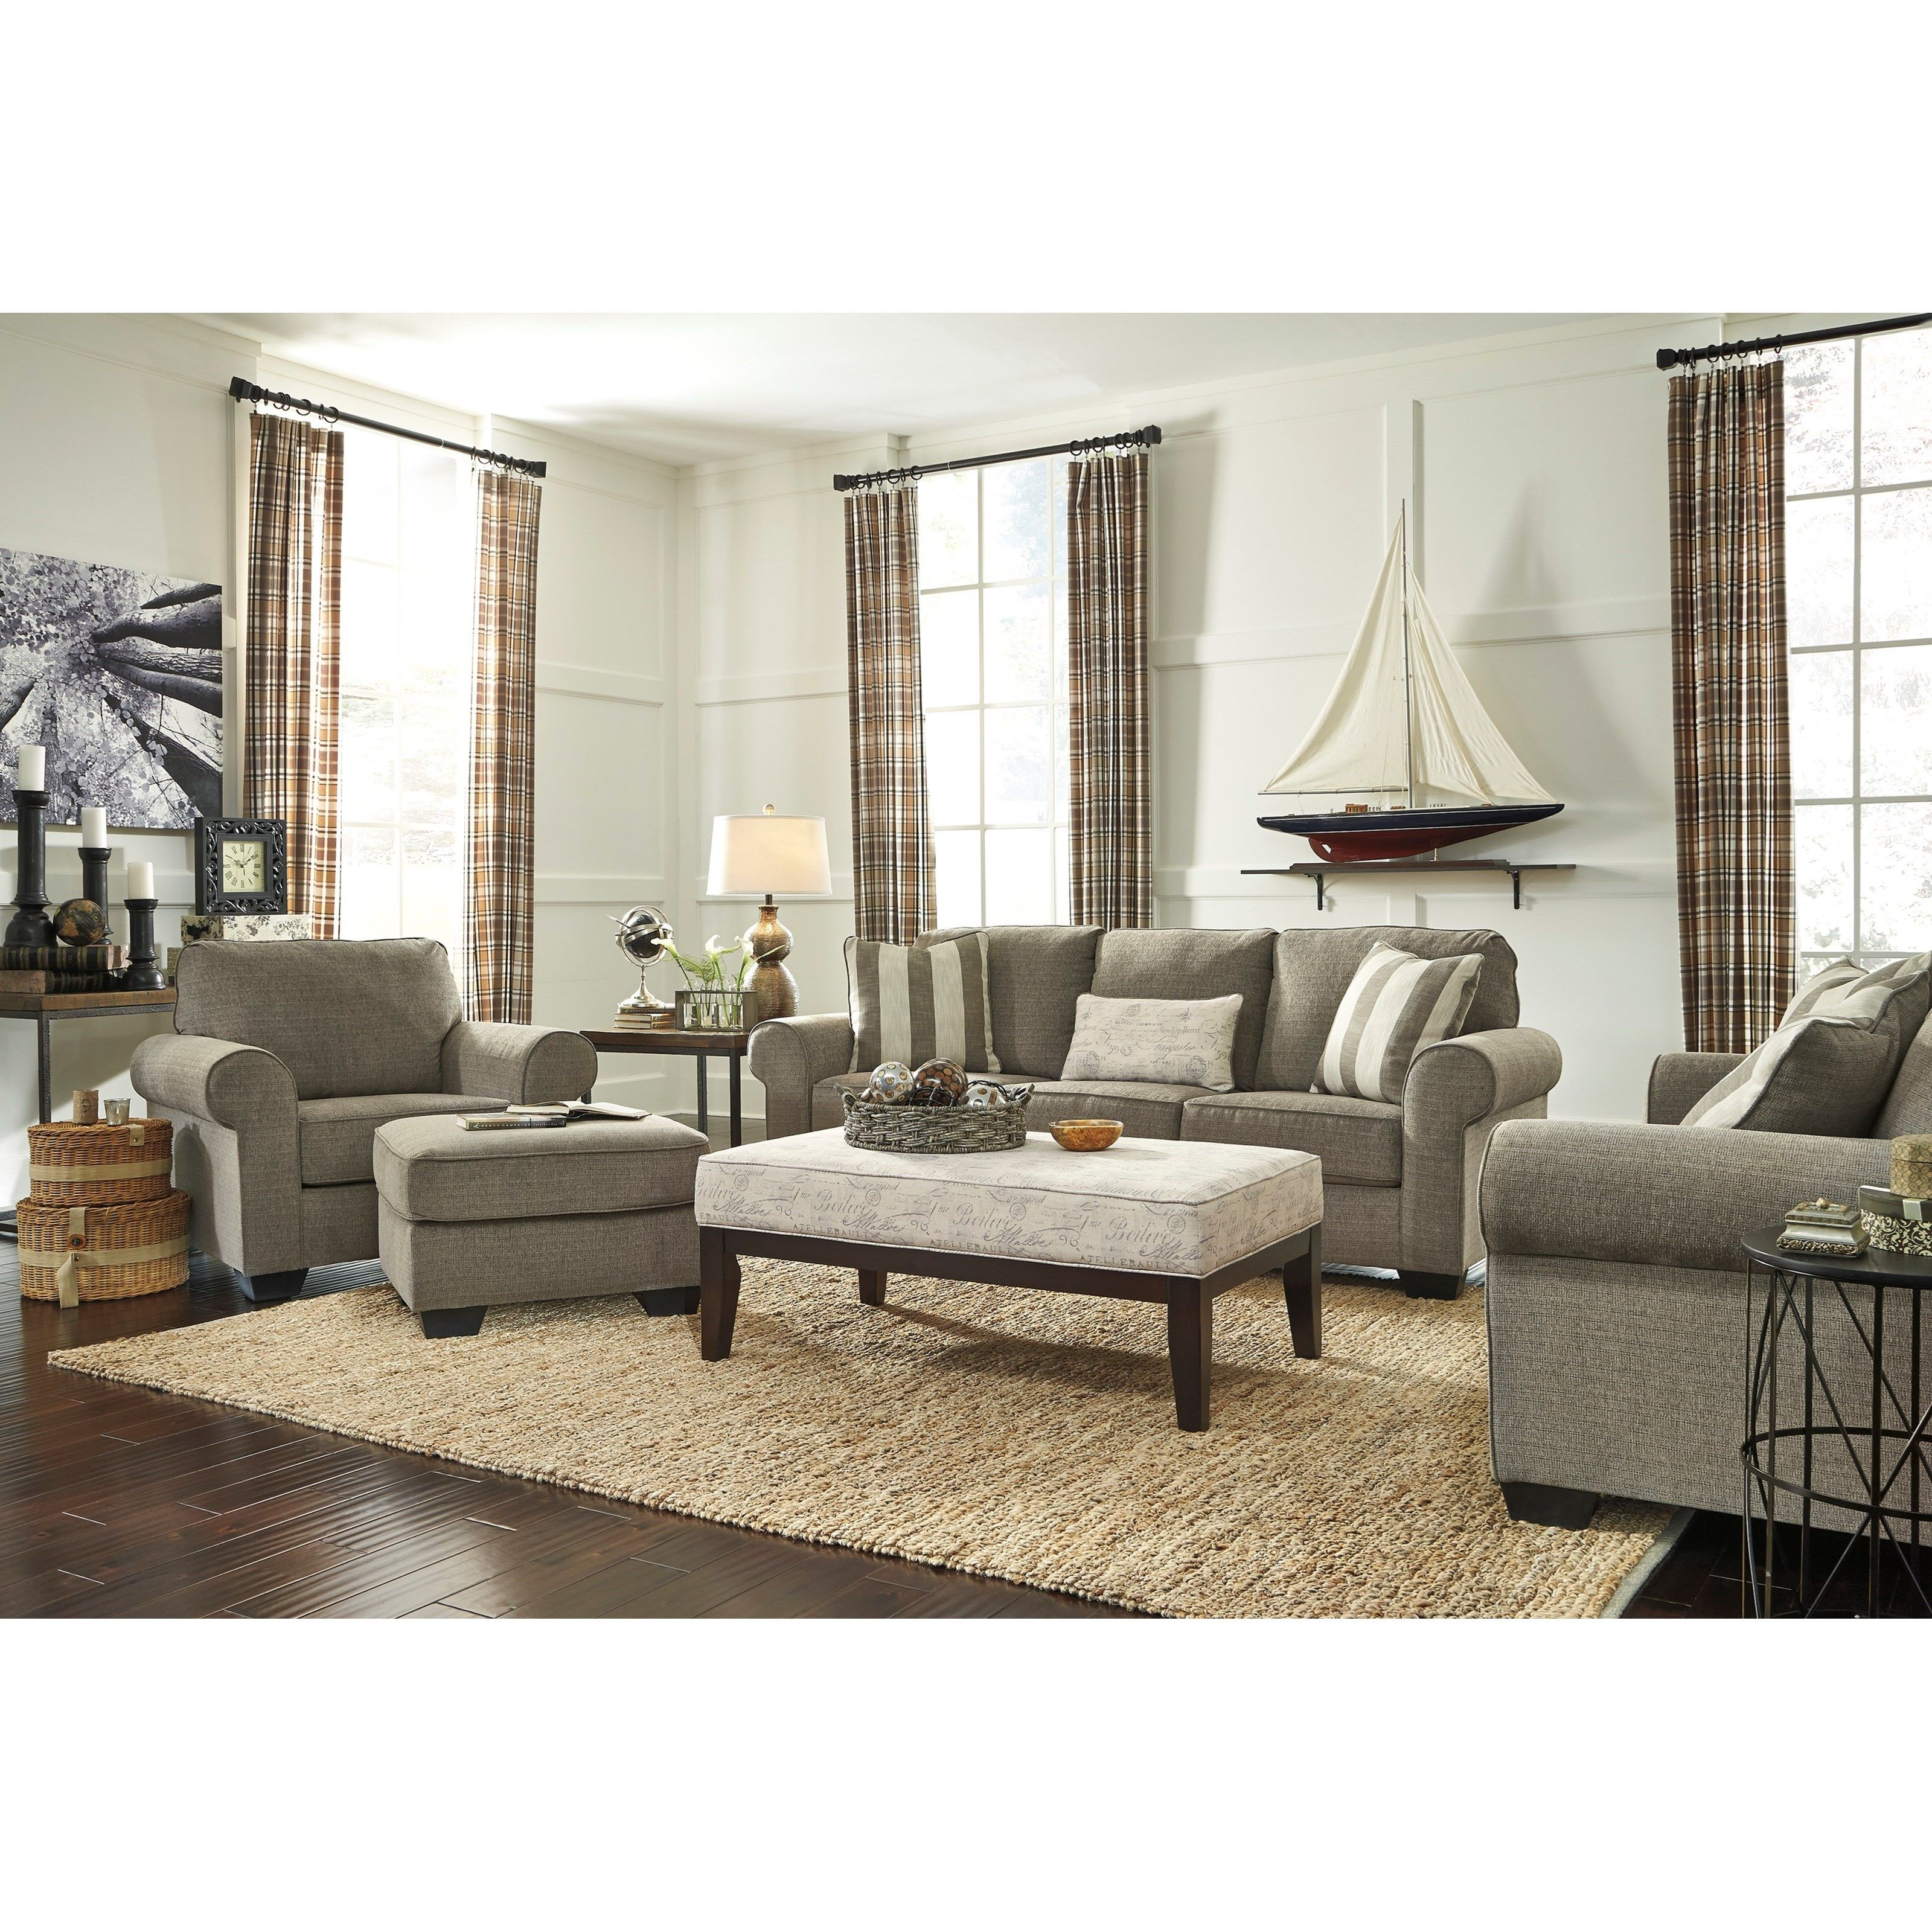 Best Baveria Stationary Living Room Group By Signature Design 400 x 300